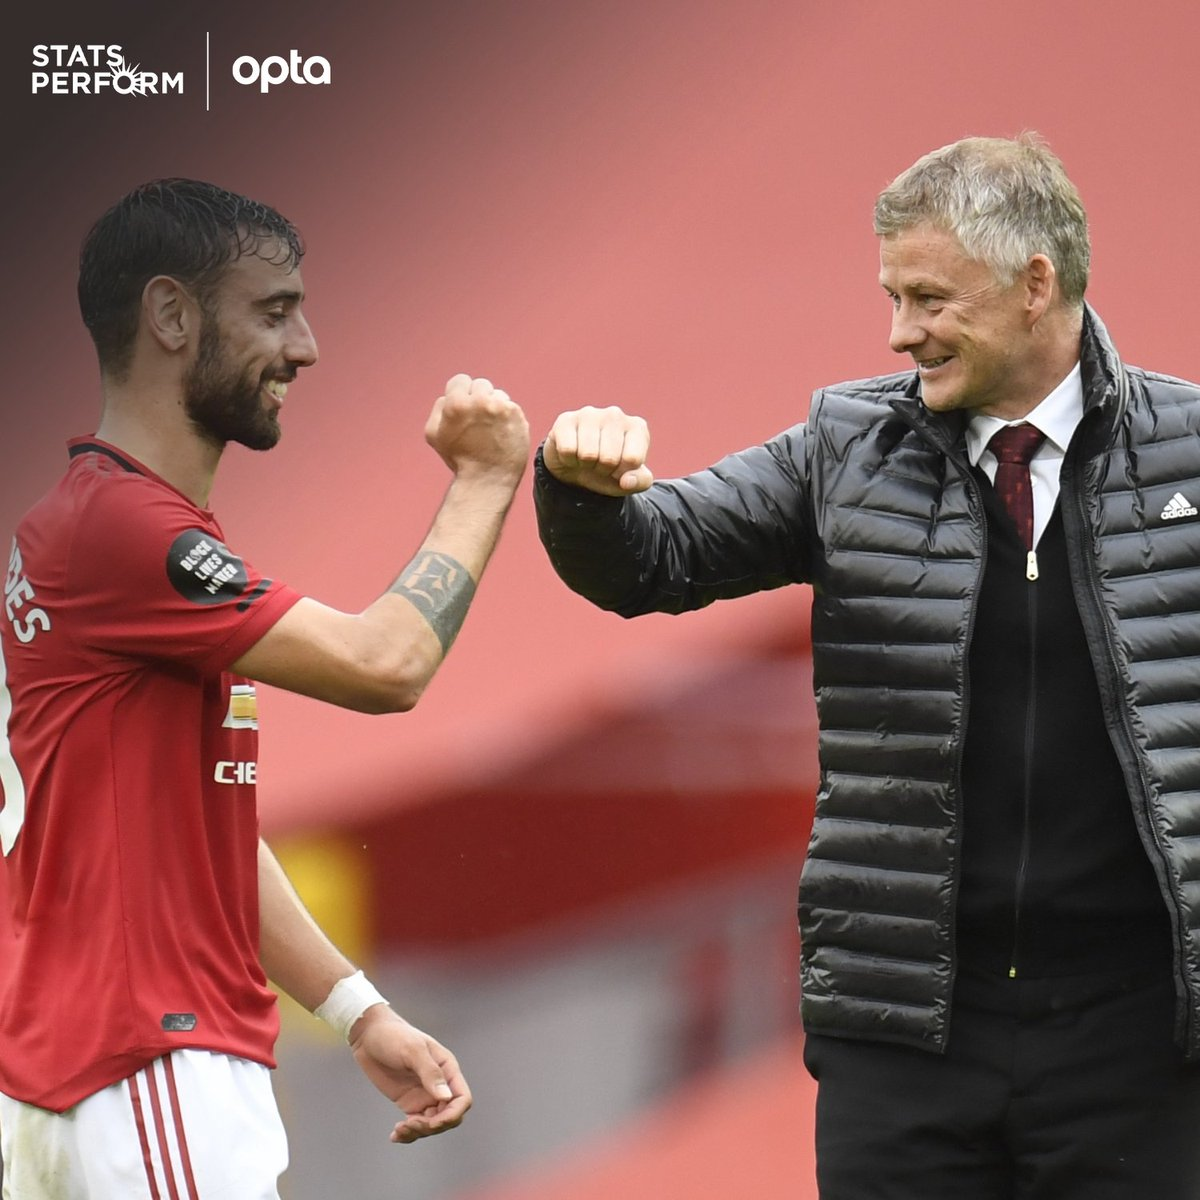 4 - Manchester United have named the same starting XI in four consecutive @premierleague games for the first time since November 2006. Via @OptaJoe #Manchester united pic.twitter.com/Vp9XXtveGr